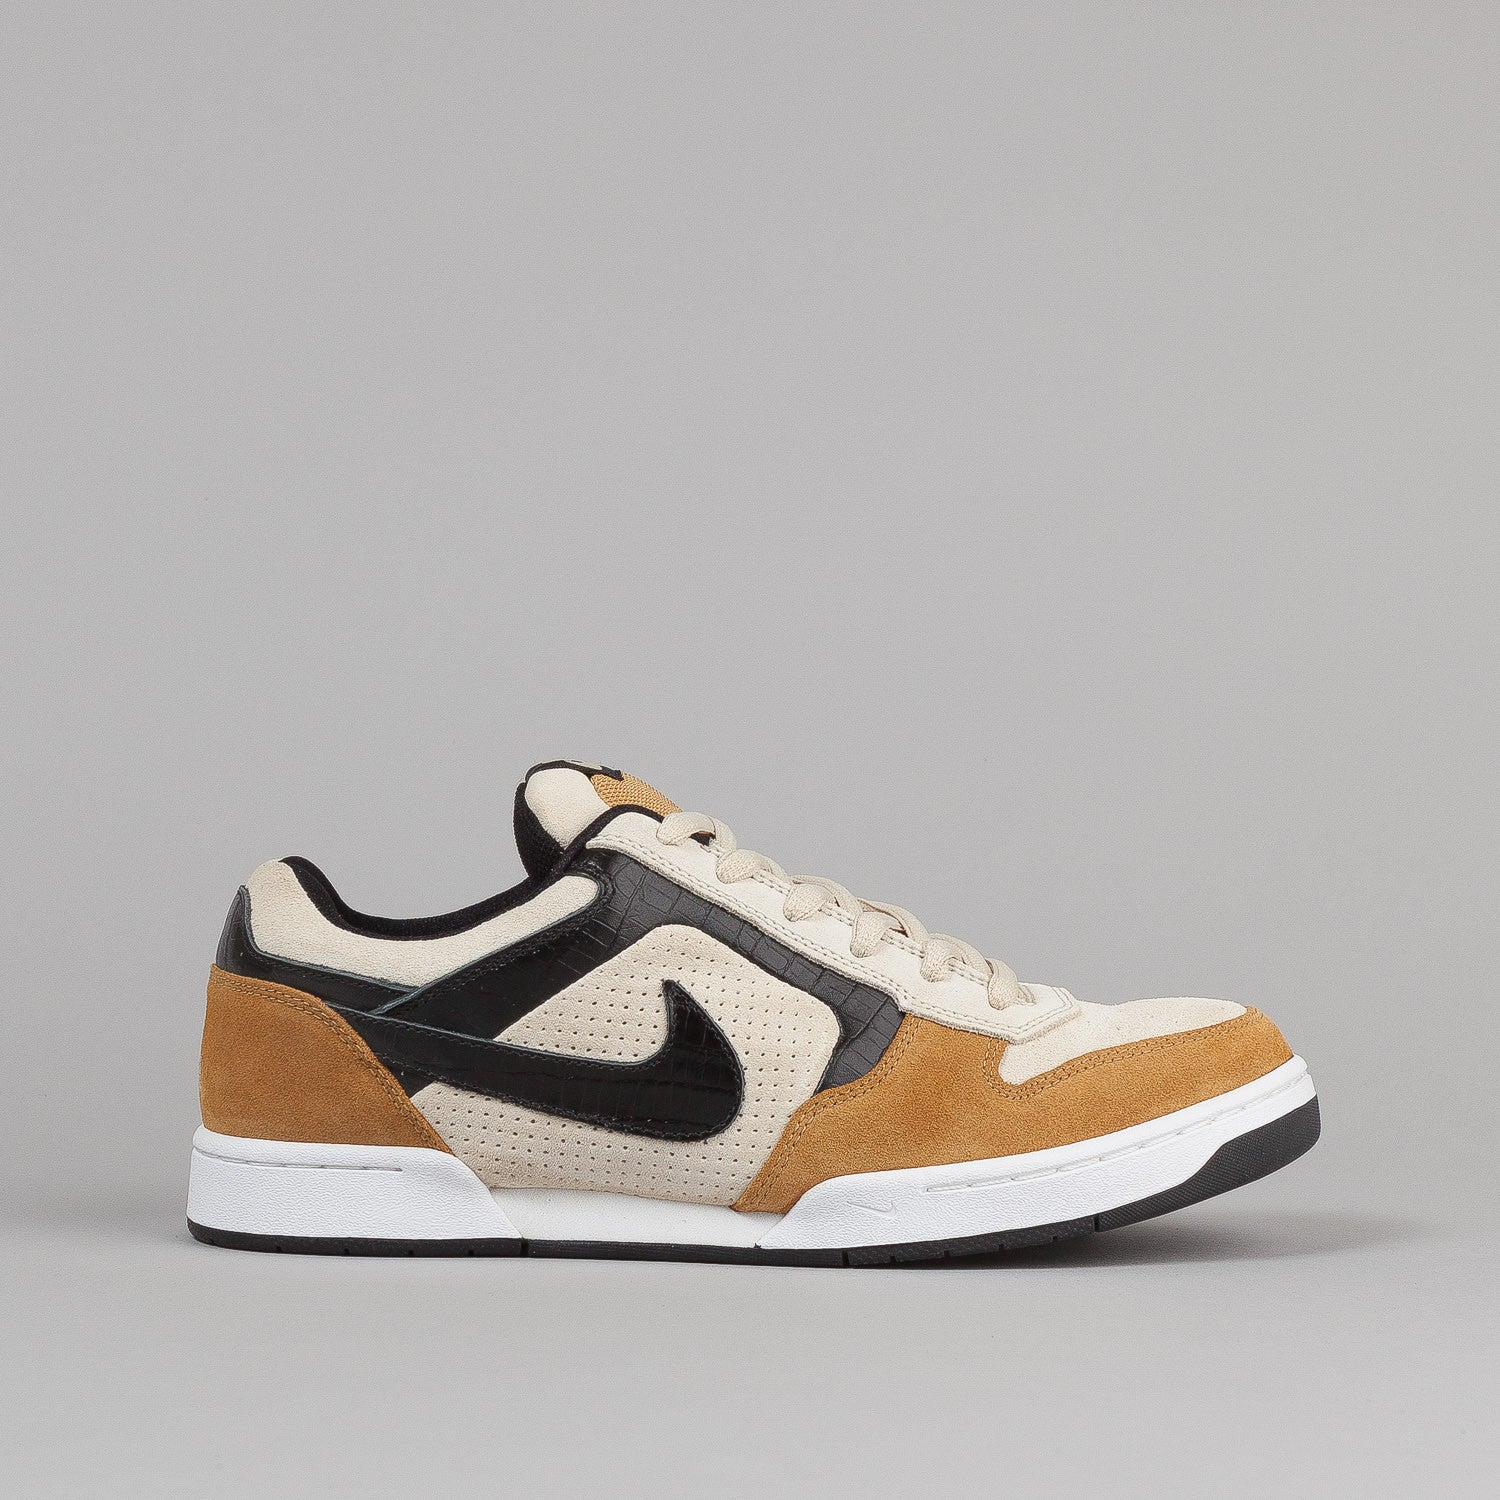 Nike SB Air Regime Shoes